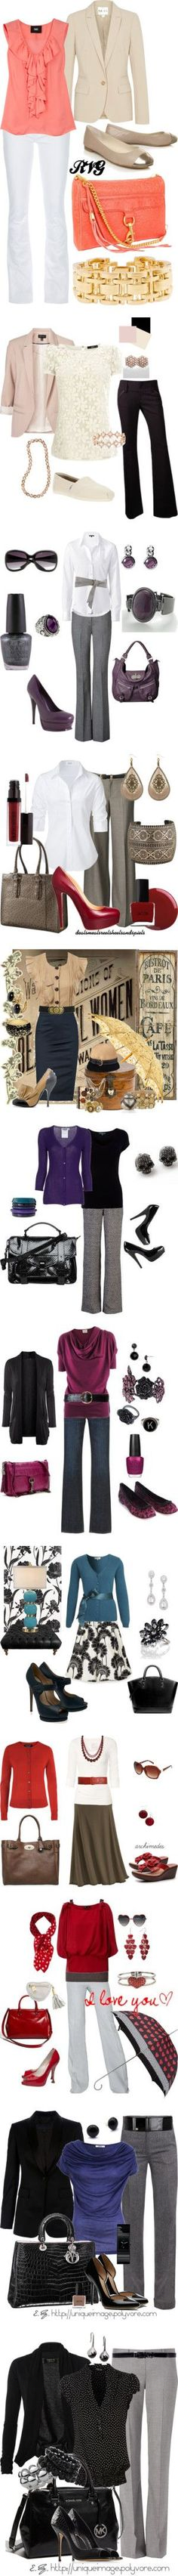 Cute work #Work Outfits for Men #Work Outfits for Women| http://work-outfits-for-women.kira.lemoncoin.org